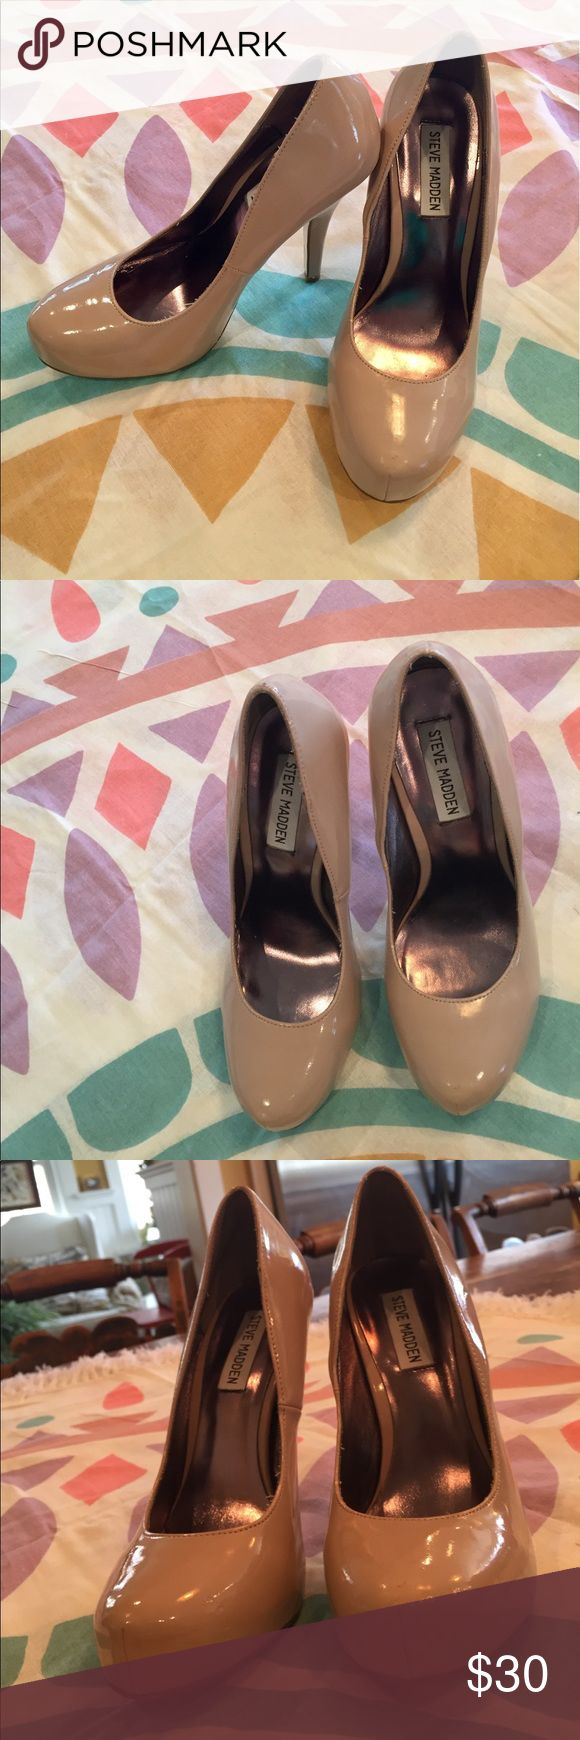 Steve Madden Nude High Heels Steve Madden size 7.5 Nude high heels                                                    Feel free to ask questions! Steven by Steve Madden Shoes Heels